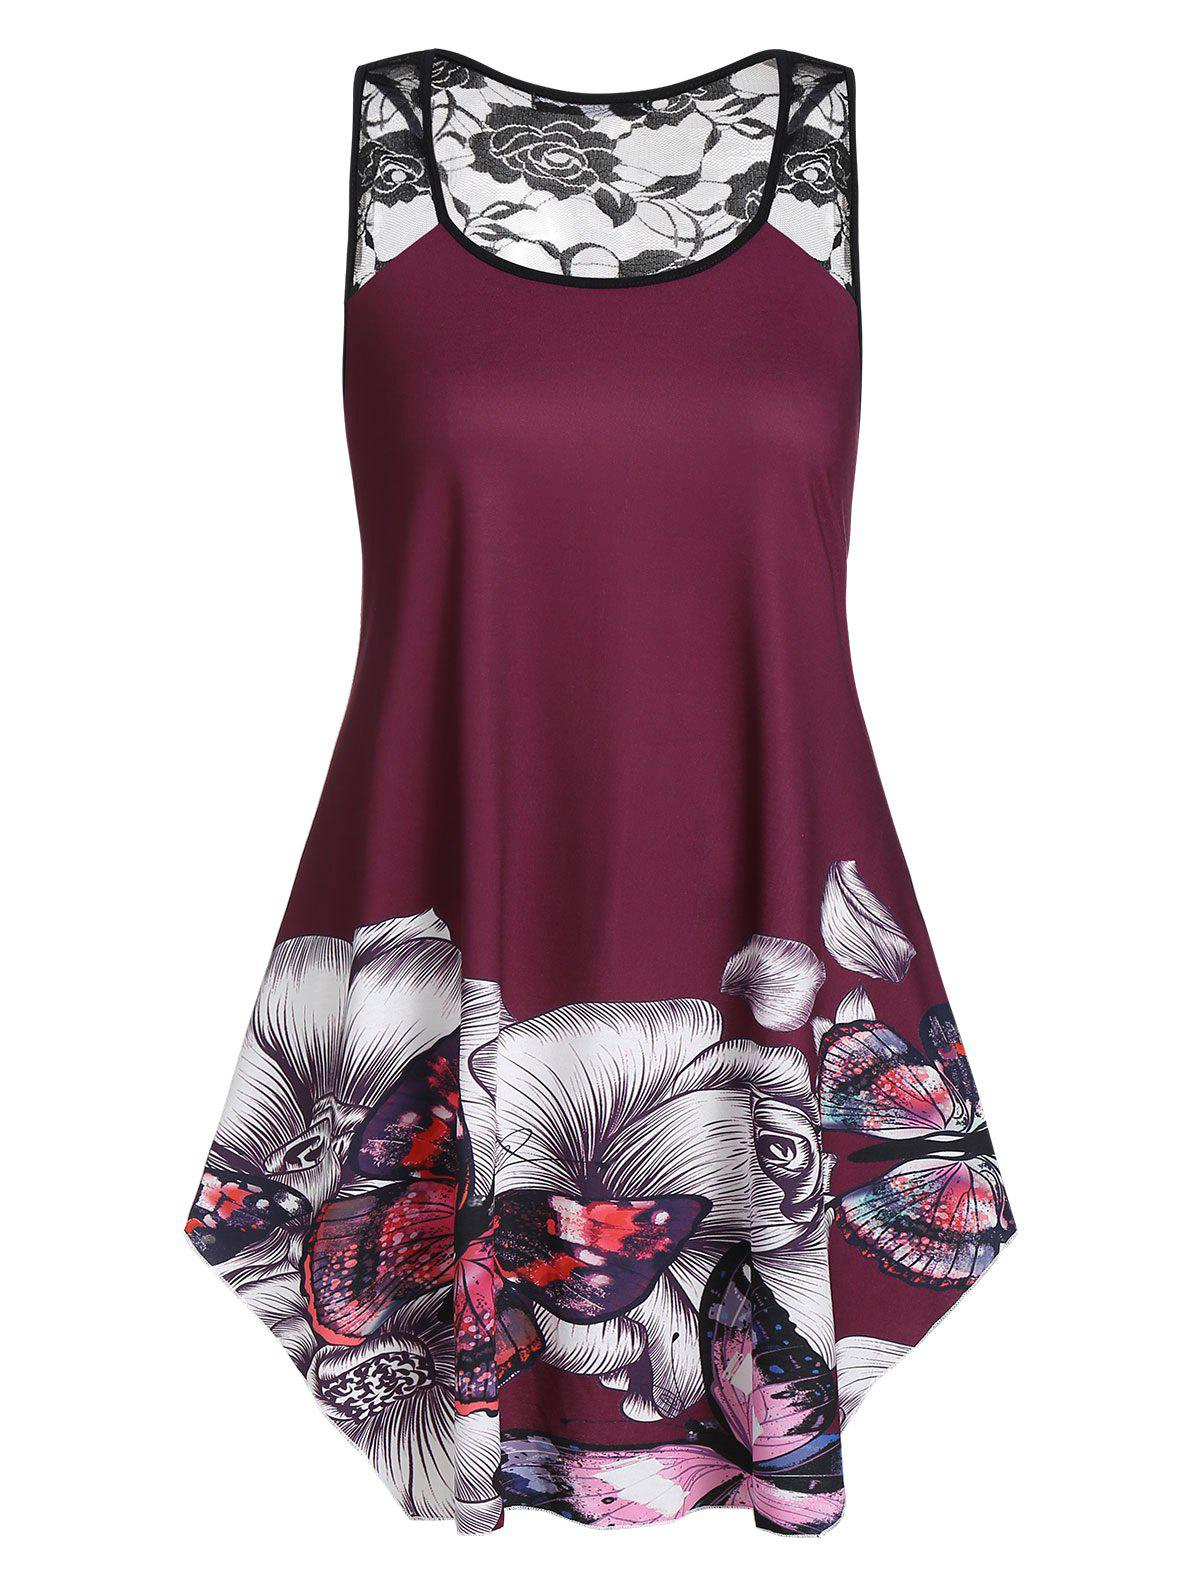 Plus Size Floral Butterfly Print Flare Tank Top - RED WINE 1X